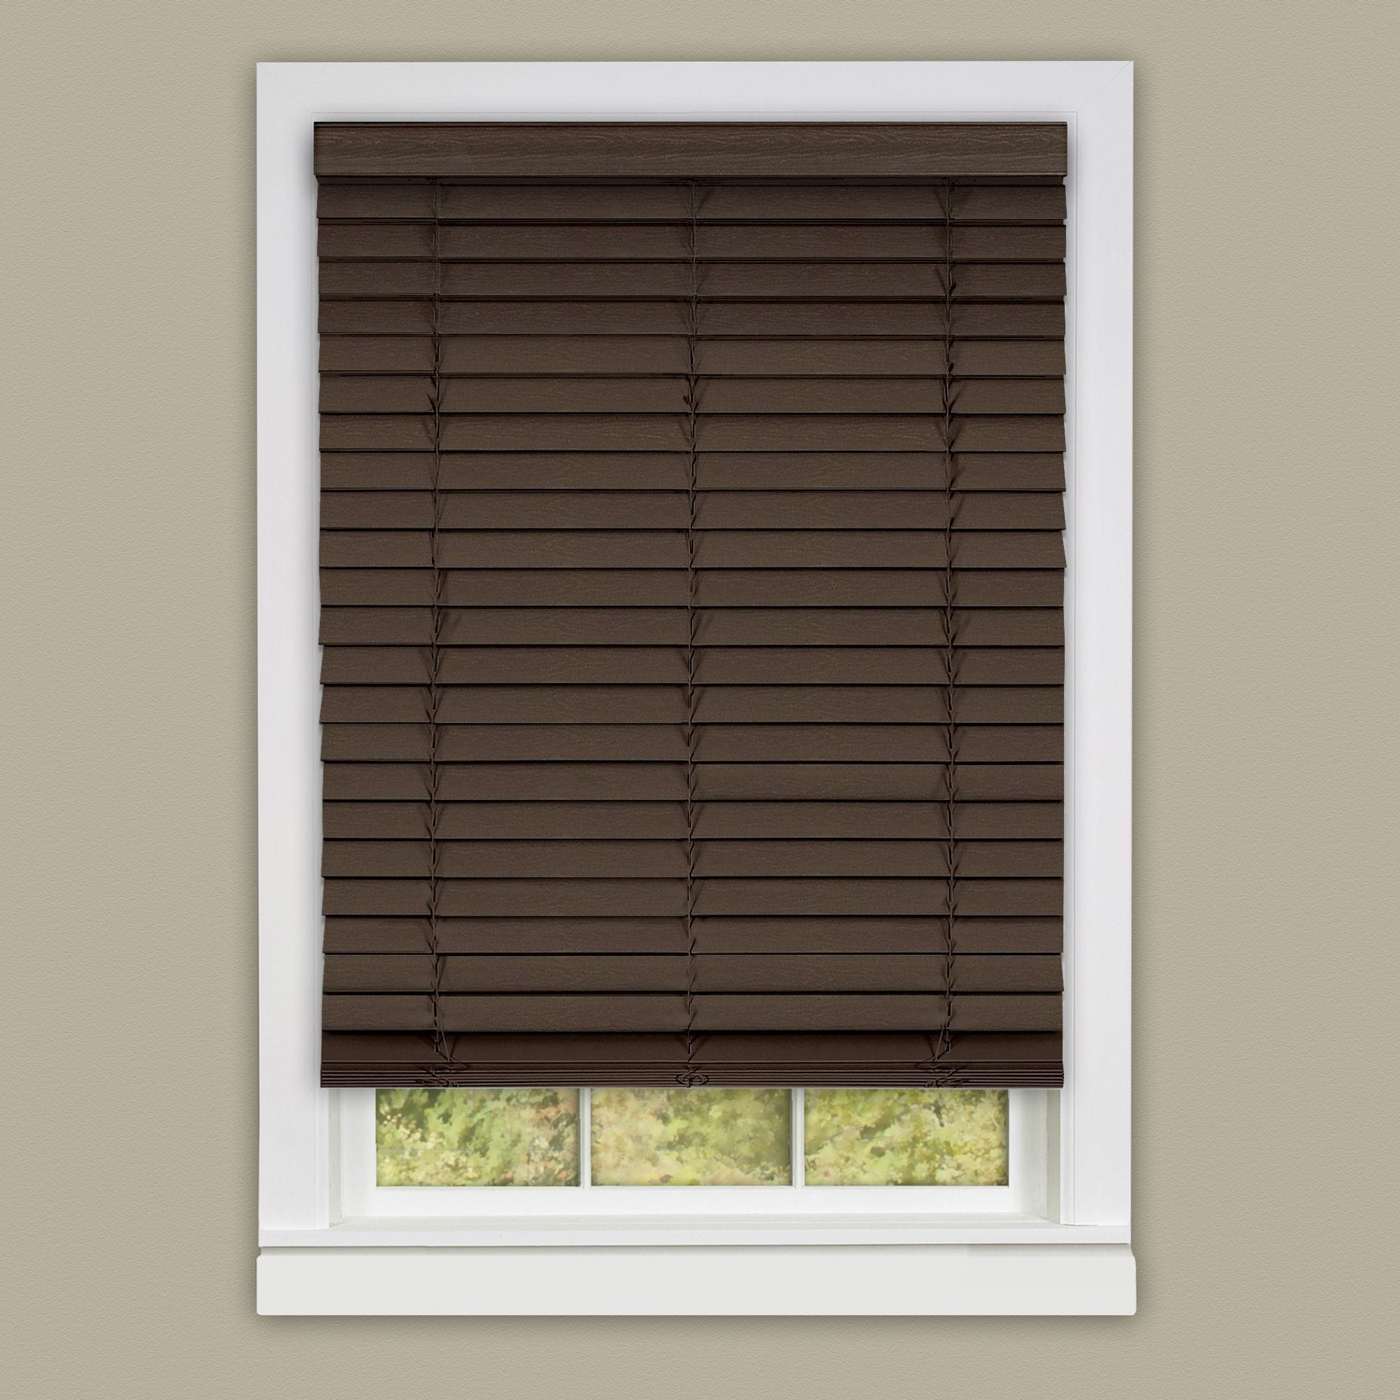 measurement x mini kitchen plantation blinds collection blind cordless venetian home wood inch dp vinyl com woodtone amazon actual